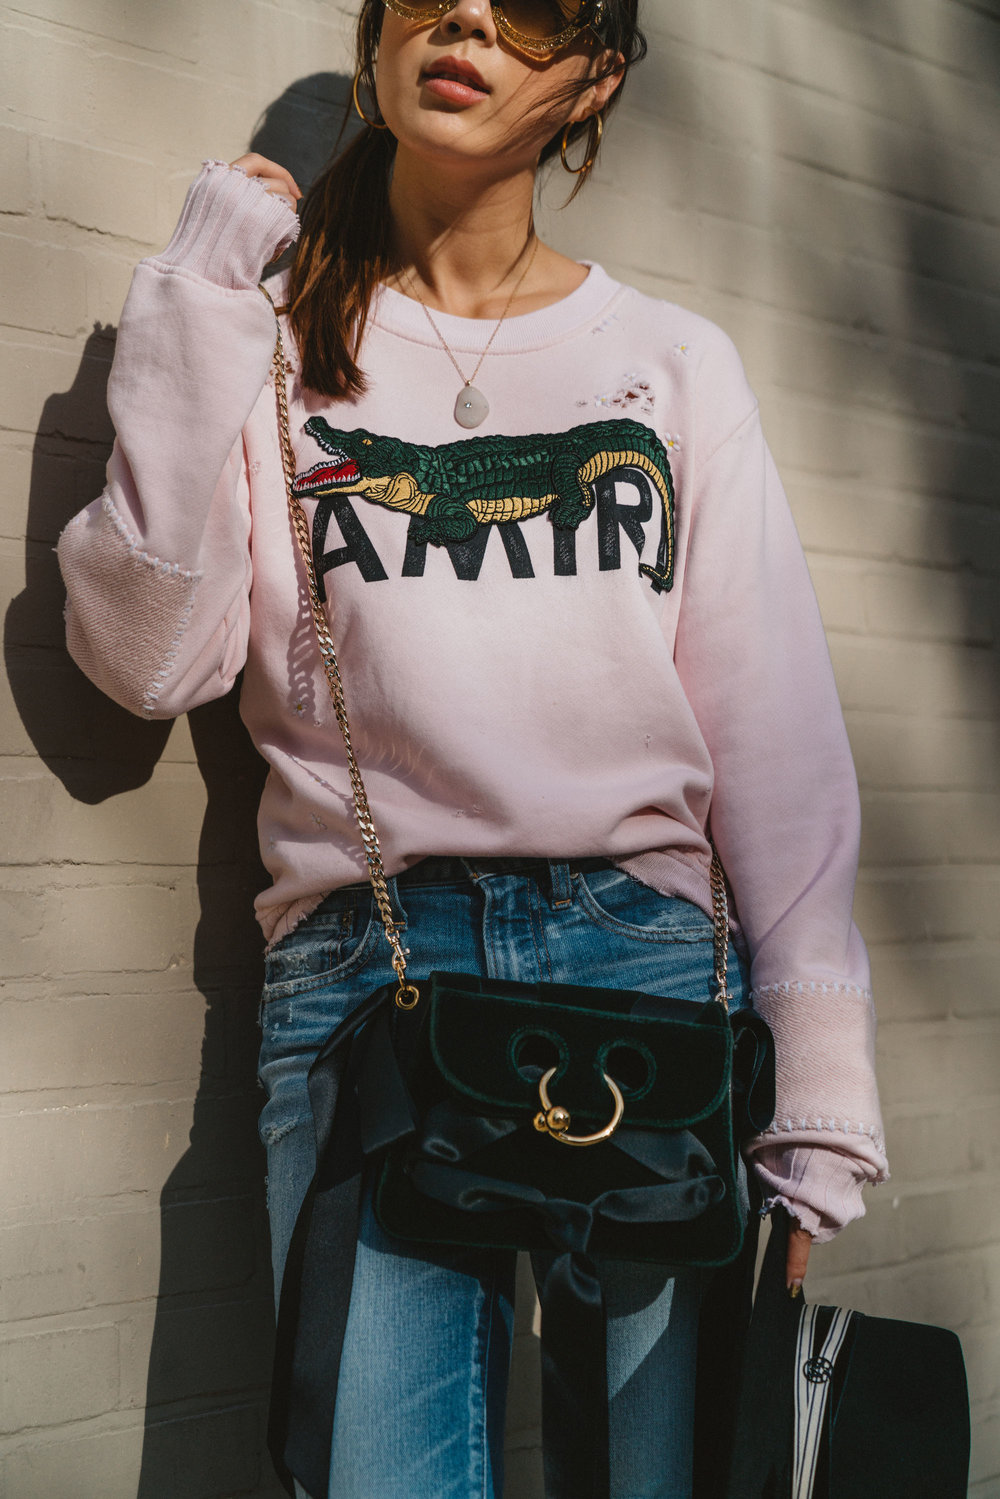 Amiri Sweatshirt, Moussy Denim, J.W. Anderson Bag